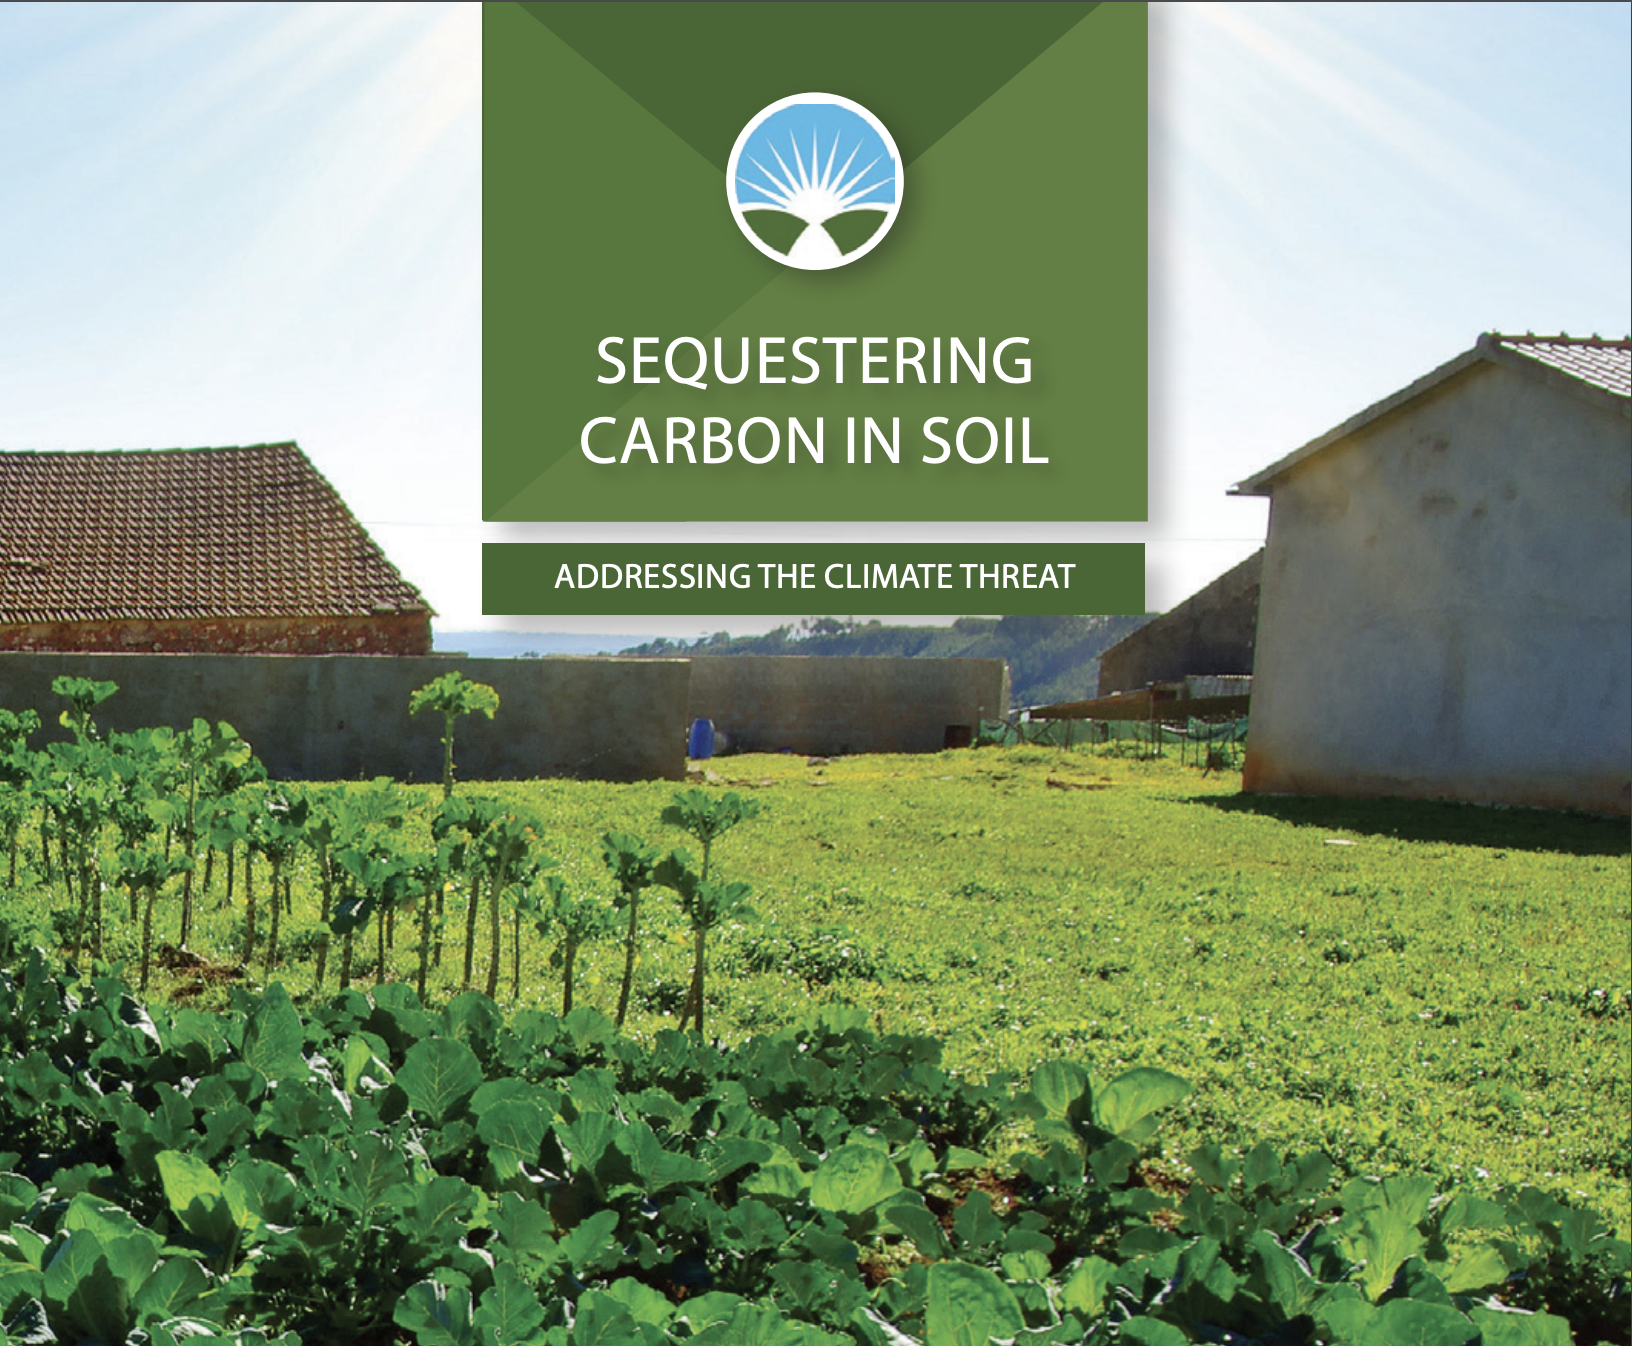 Soil Carbon Summit - Our 2017 global conference, Sequestering Carbon in Soil, brought together farmers, soil scientists, funders, and policy experts to establish the best paths to take soil carbon sequestration to scale globally. See the report for discussions and outcomes.